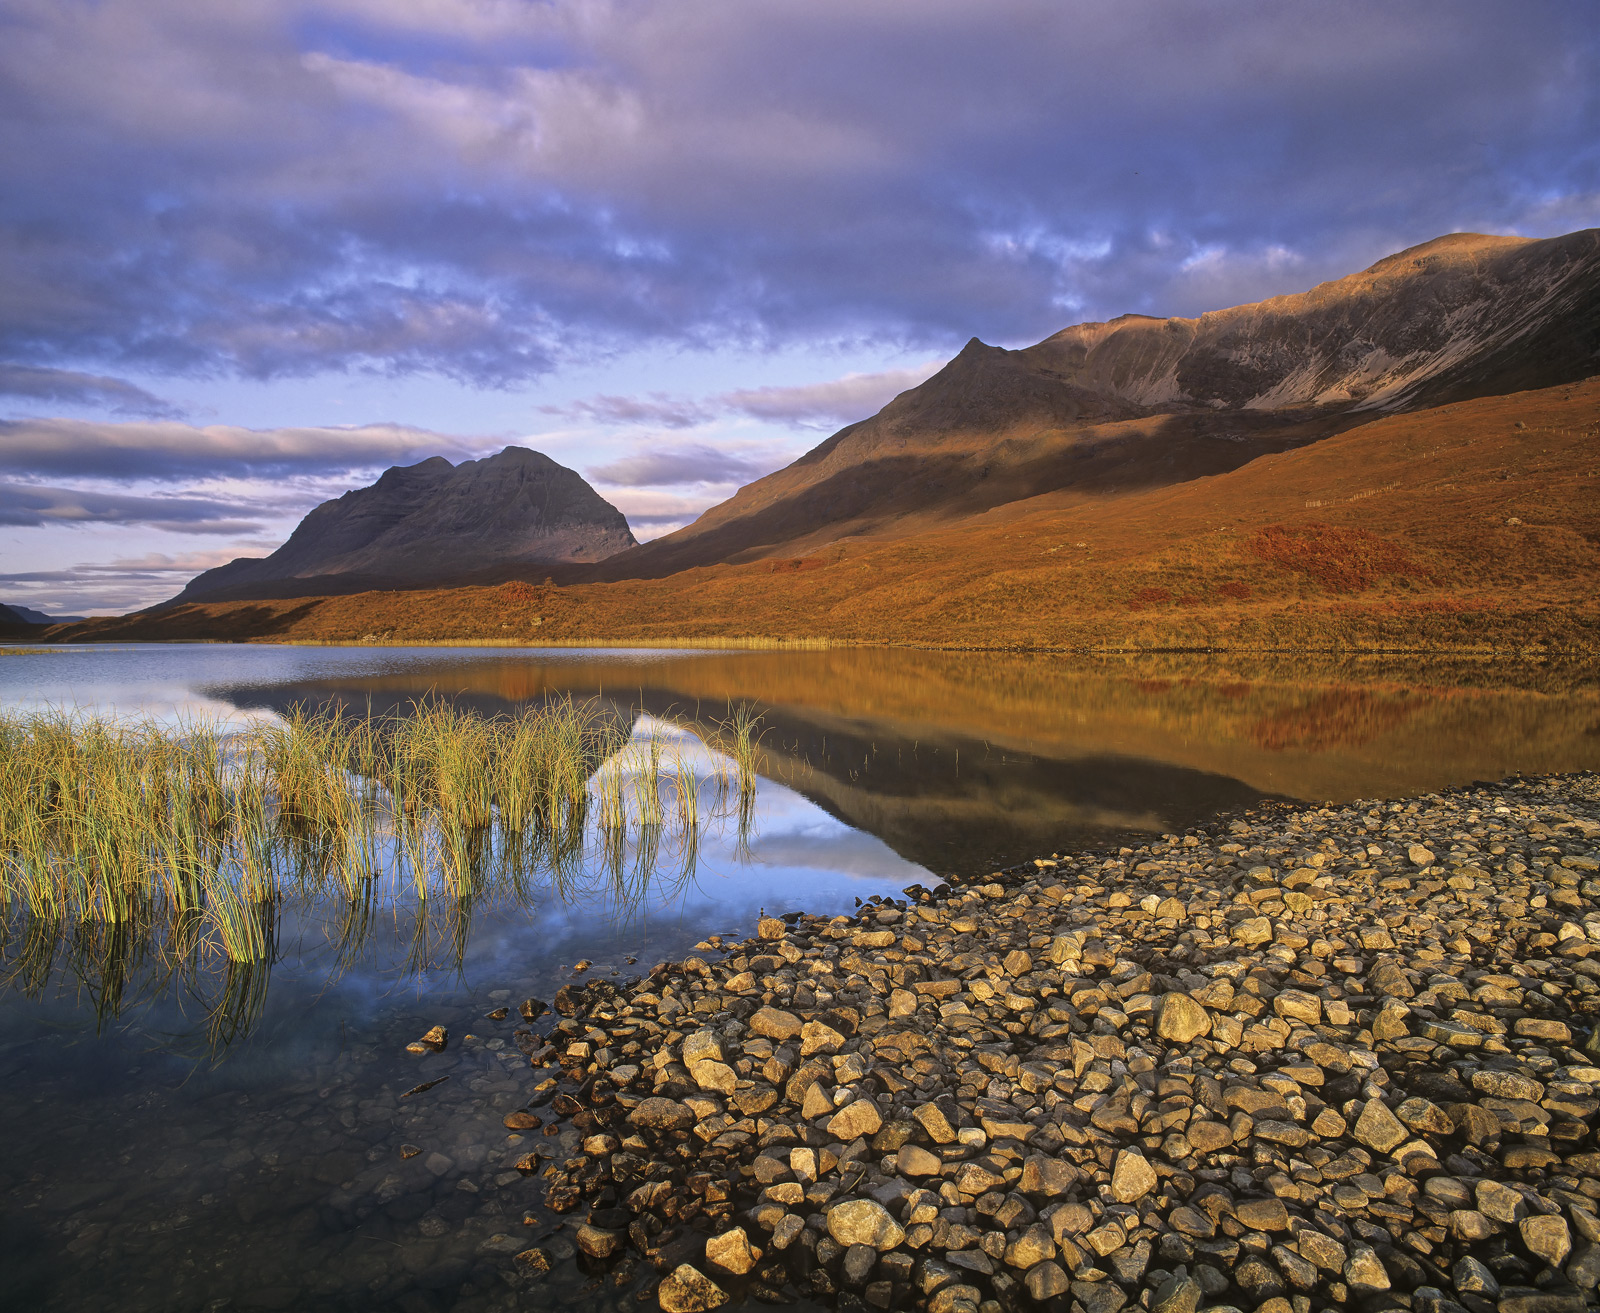 Clair Chroma, Loch Clair, Torridon, Scotland, Liathach, brooding, moraine, reflections, reed bed, sunrise, beautiful , photo